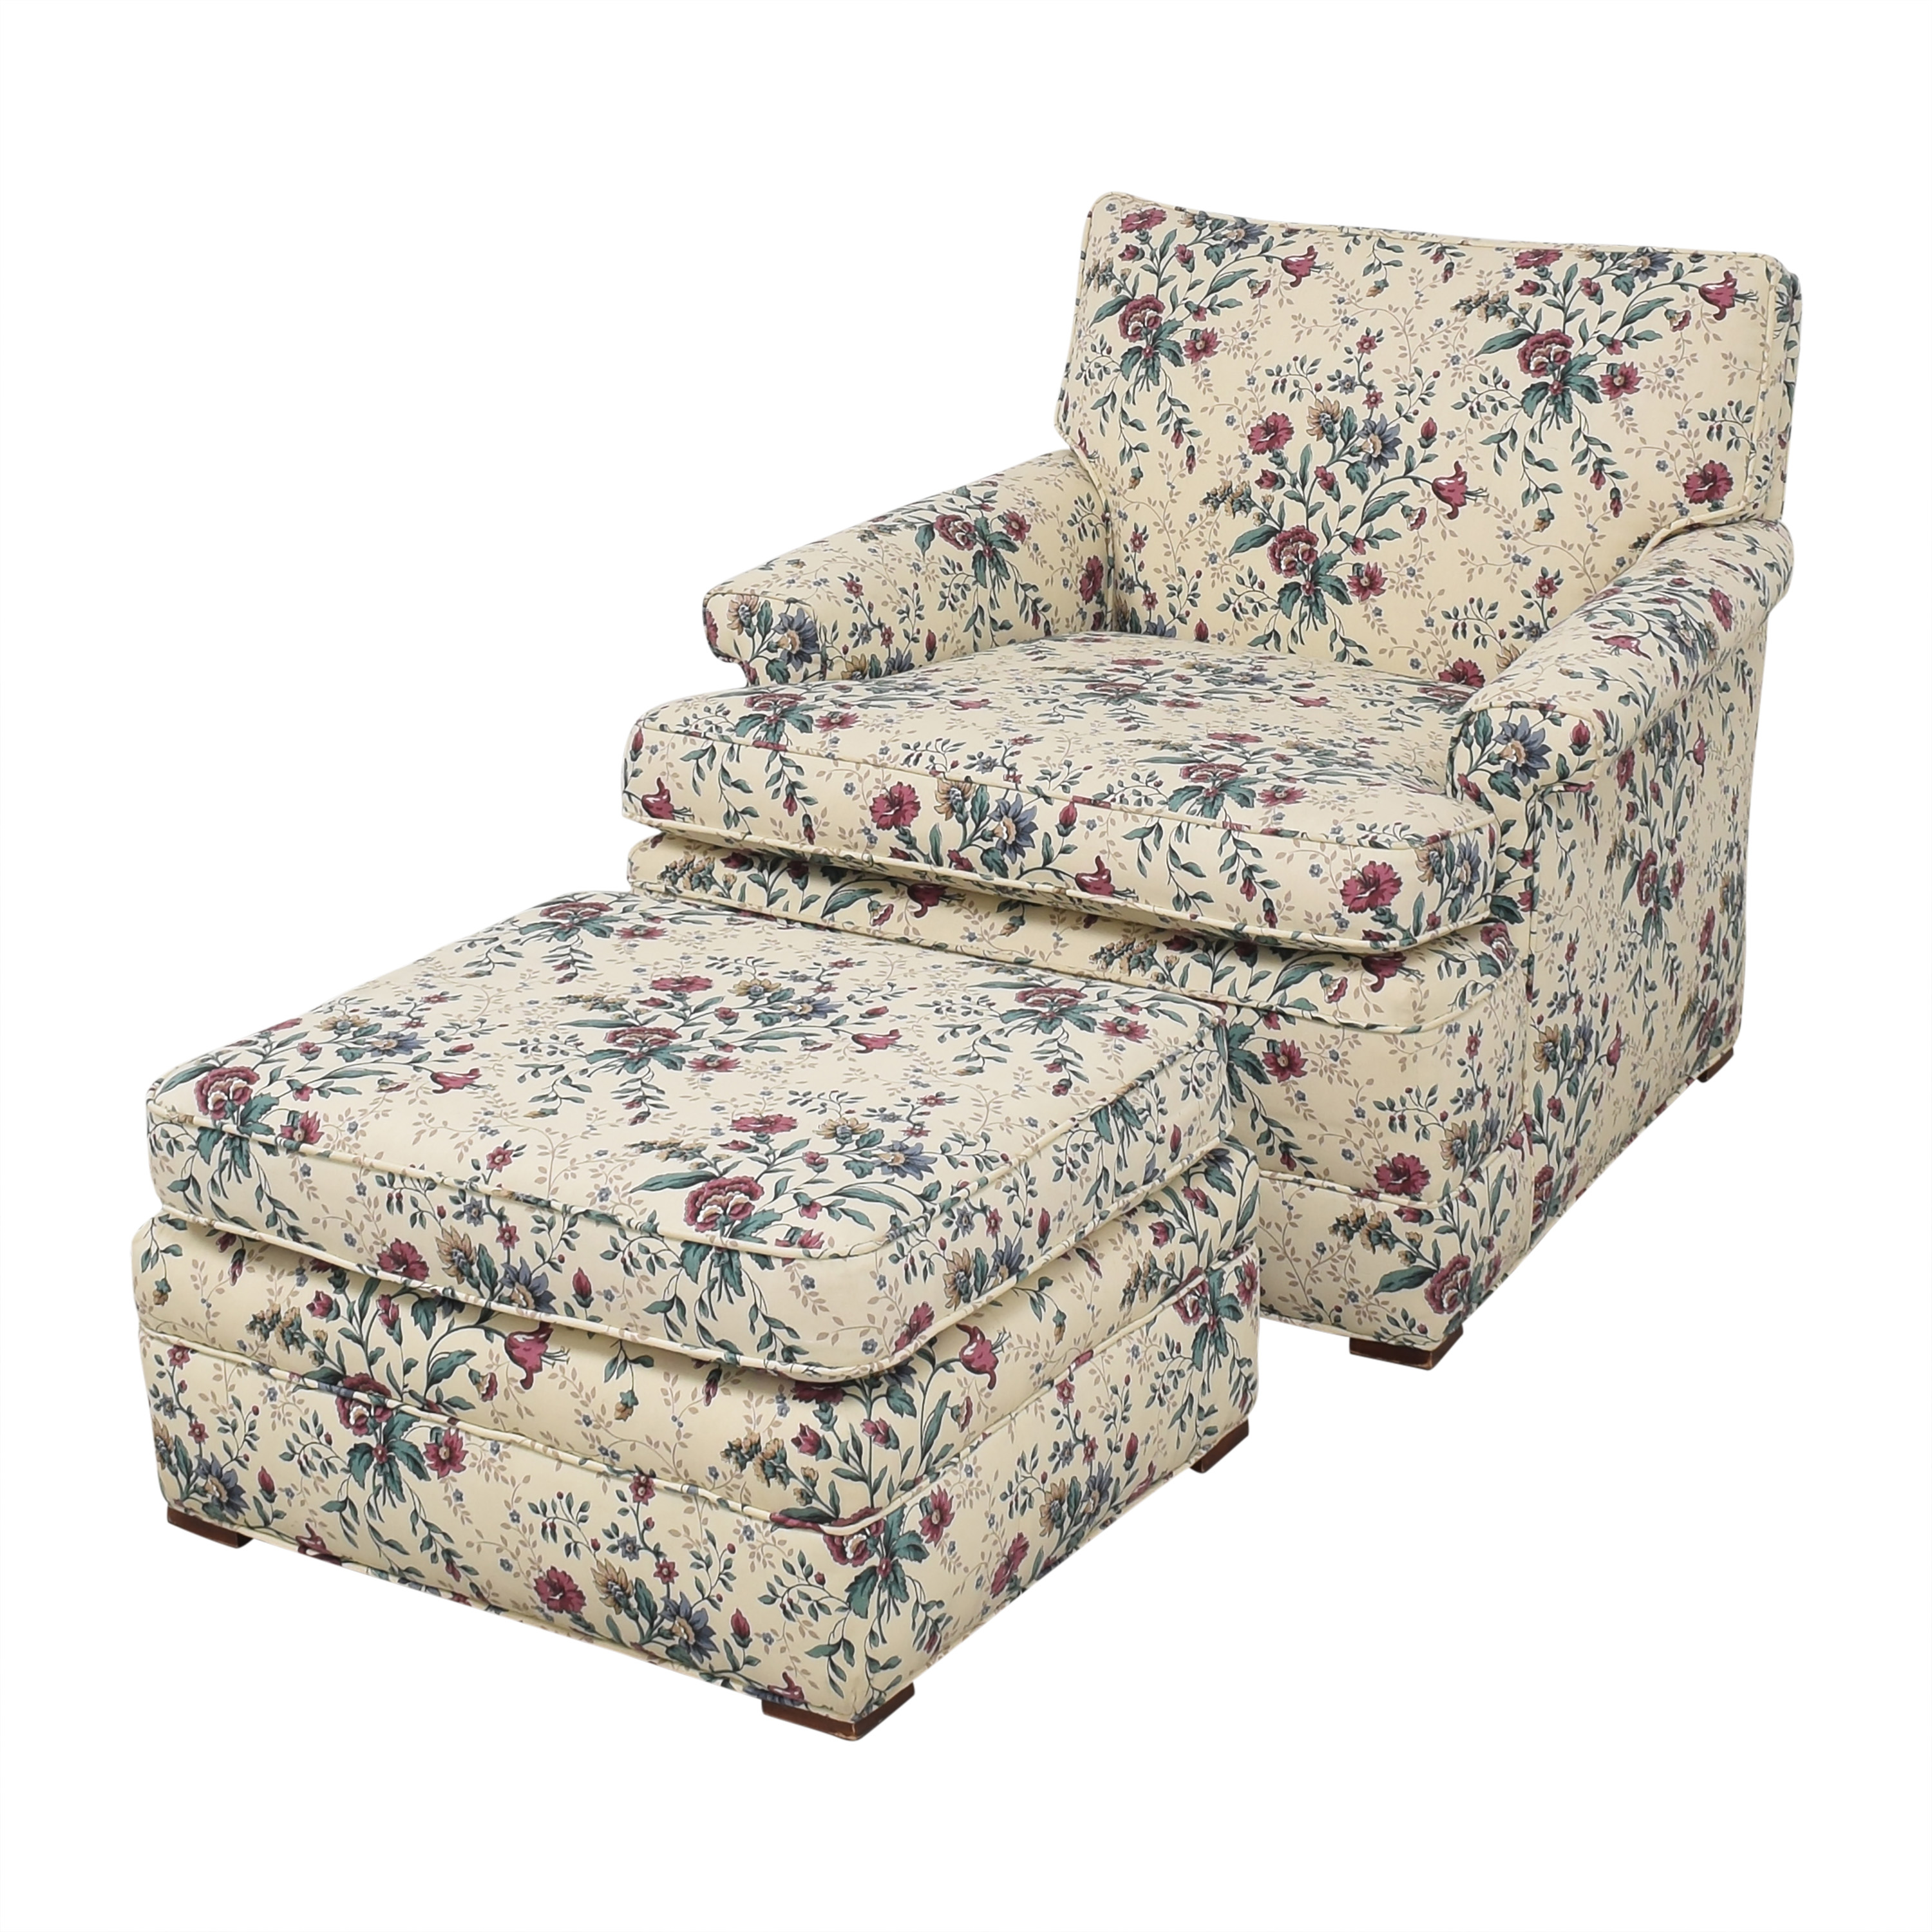 Floral Accent Chair with Ottoman for sale